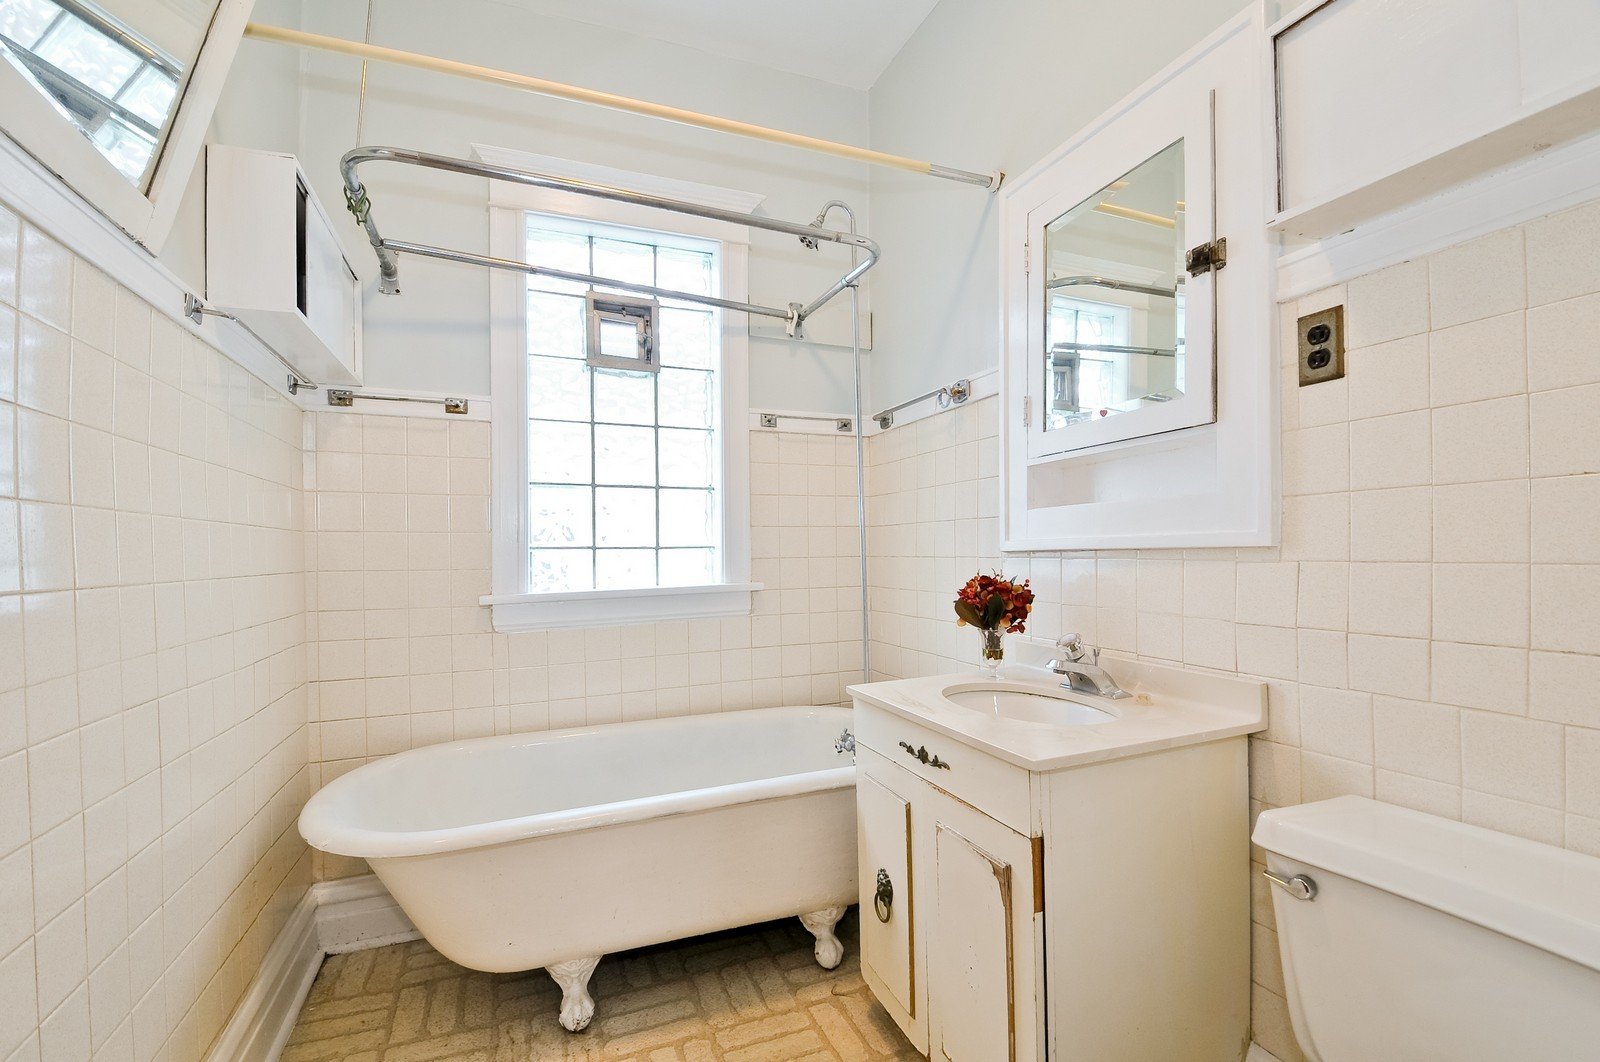 Real Estate Photography - 4435 N Avers Ave, Chicago, IL, 60625 - Bathroom